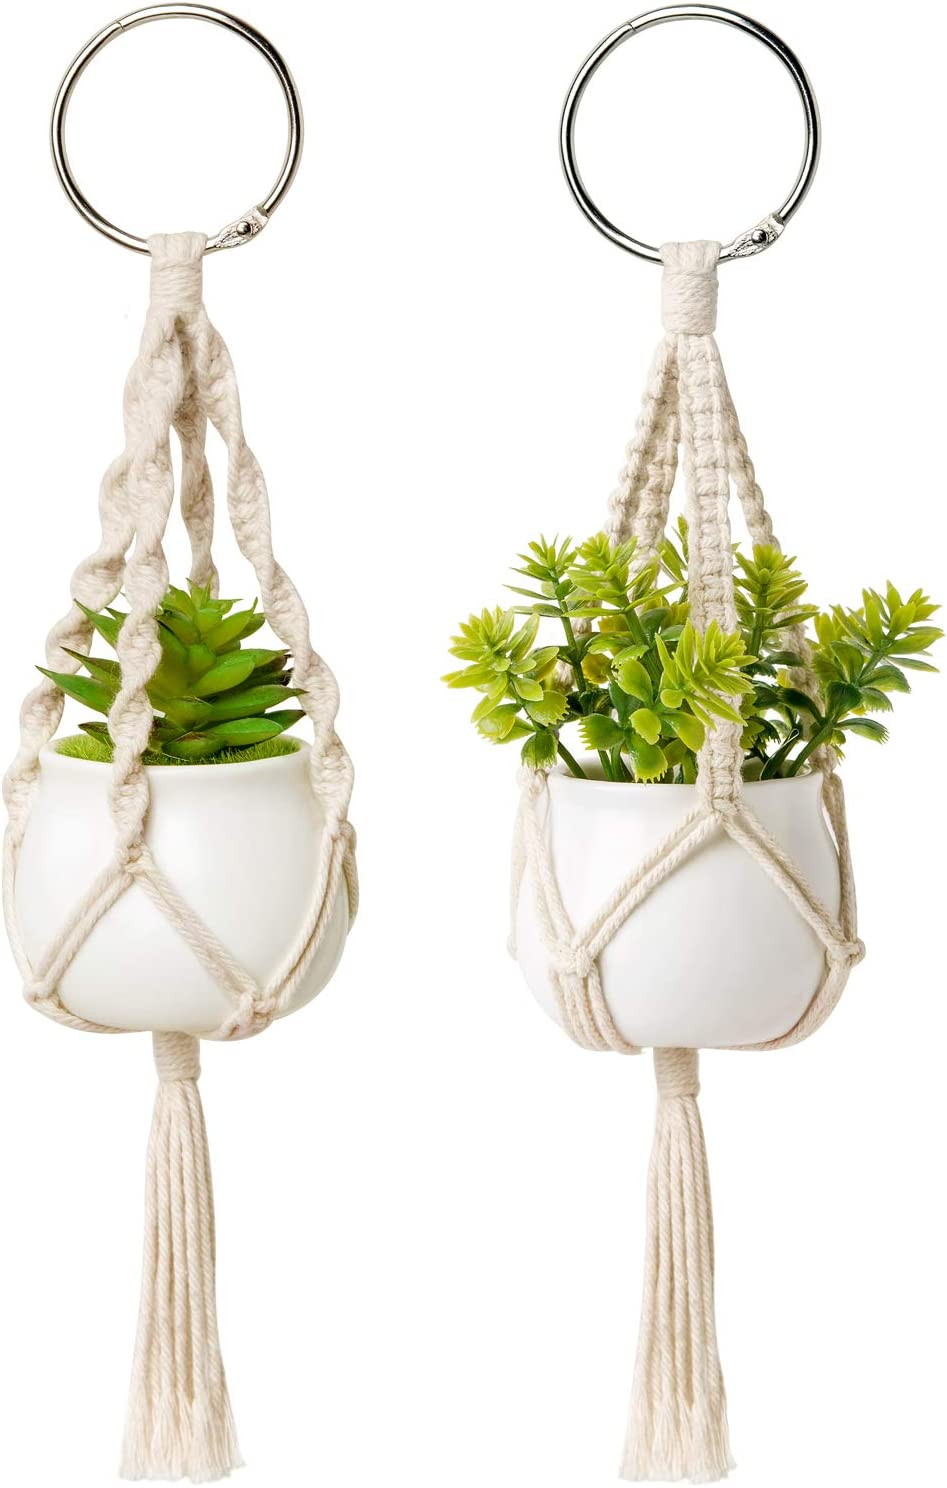 Dahey Mini Macrame Plant Car Accessories Rear View Mirrior Charm Cute Hanging Rearview Car Decor Boho Hanger with Artificial Succulent Plants for Plant Lover, 2 Pcs, 10.5 inch, White